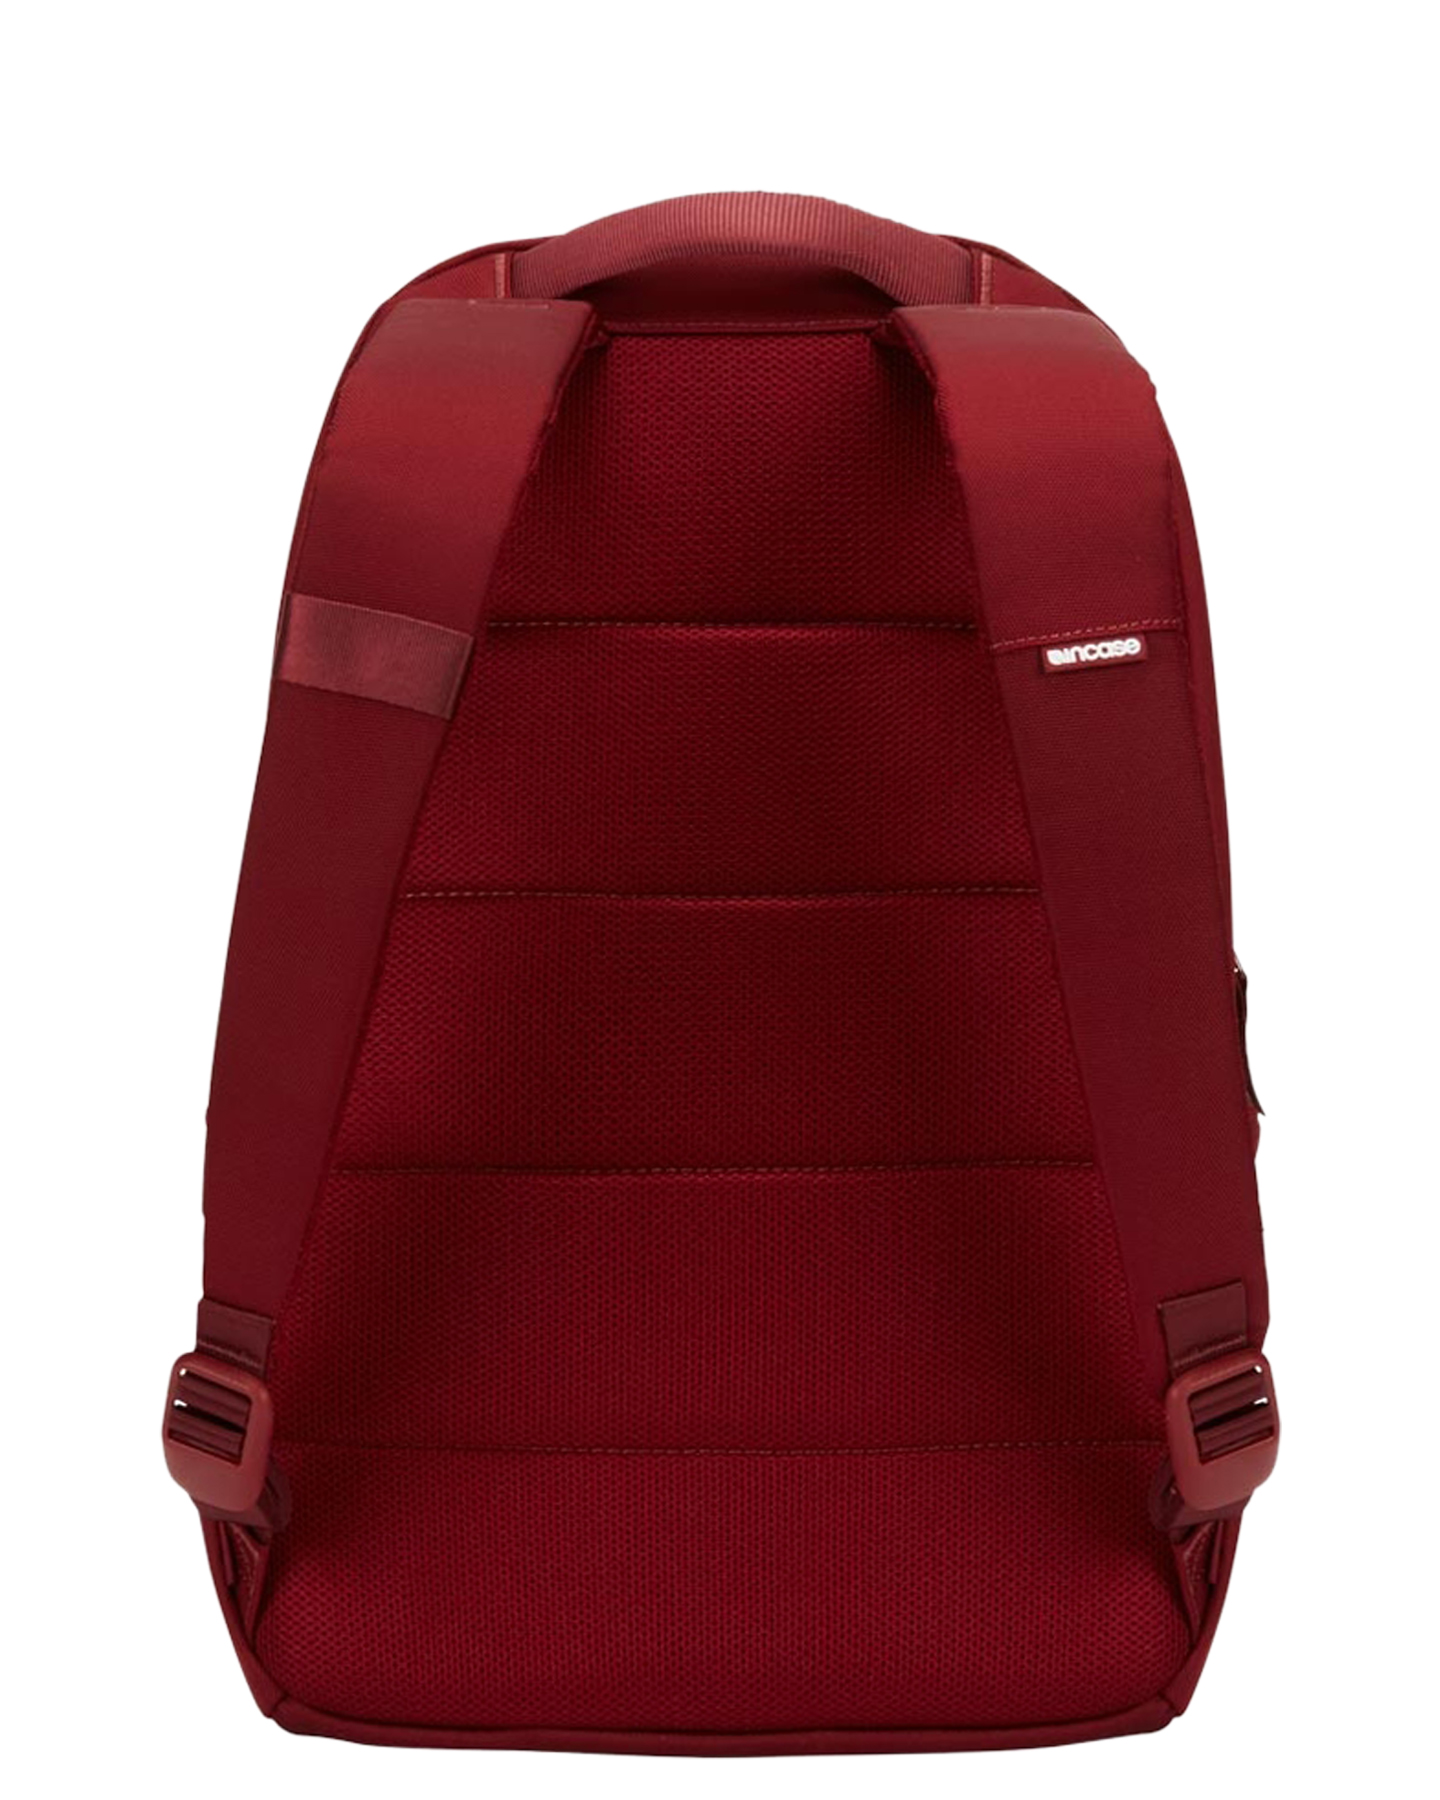 Wholesale Price Cheap Price Discount Online District 18L Backpack Deep Red Incase Cheap Perfect Clearance Wide Range Of 5gWfYiP5